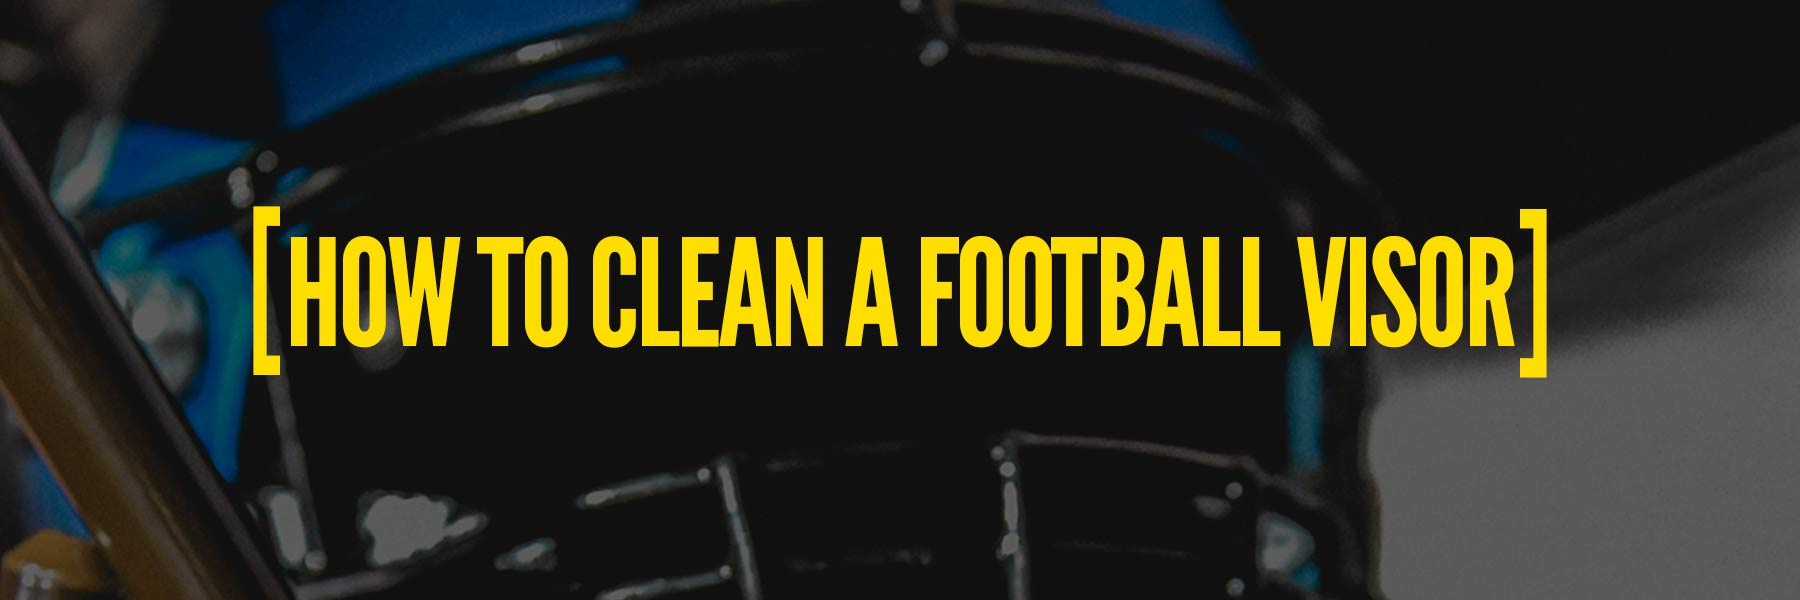 How To Clean a Football Visor